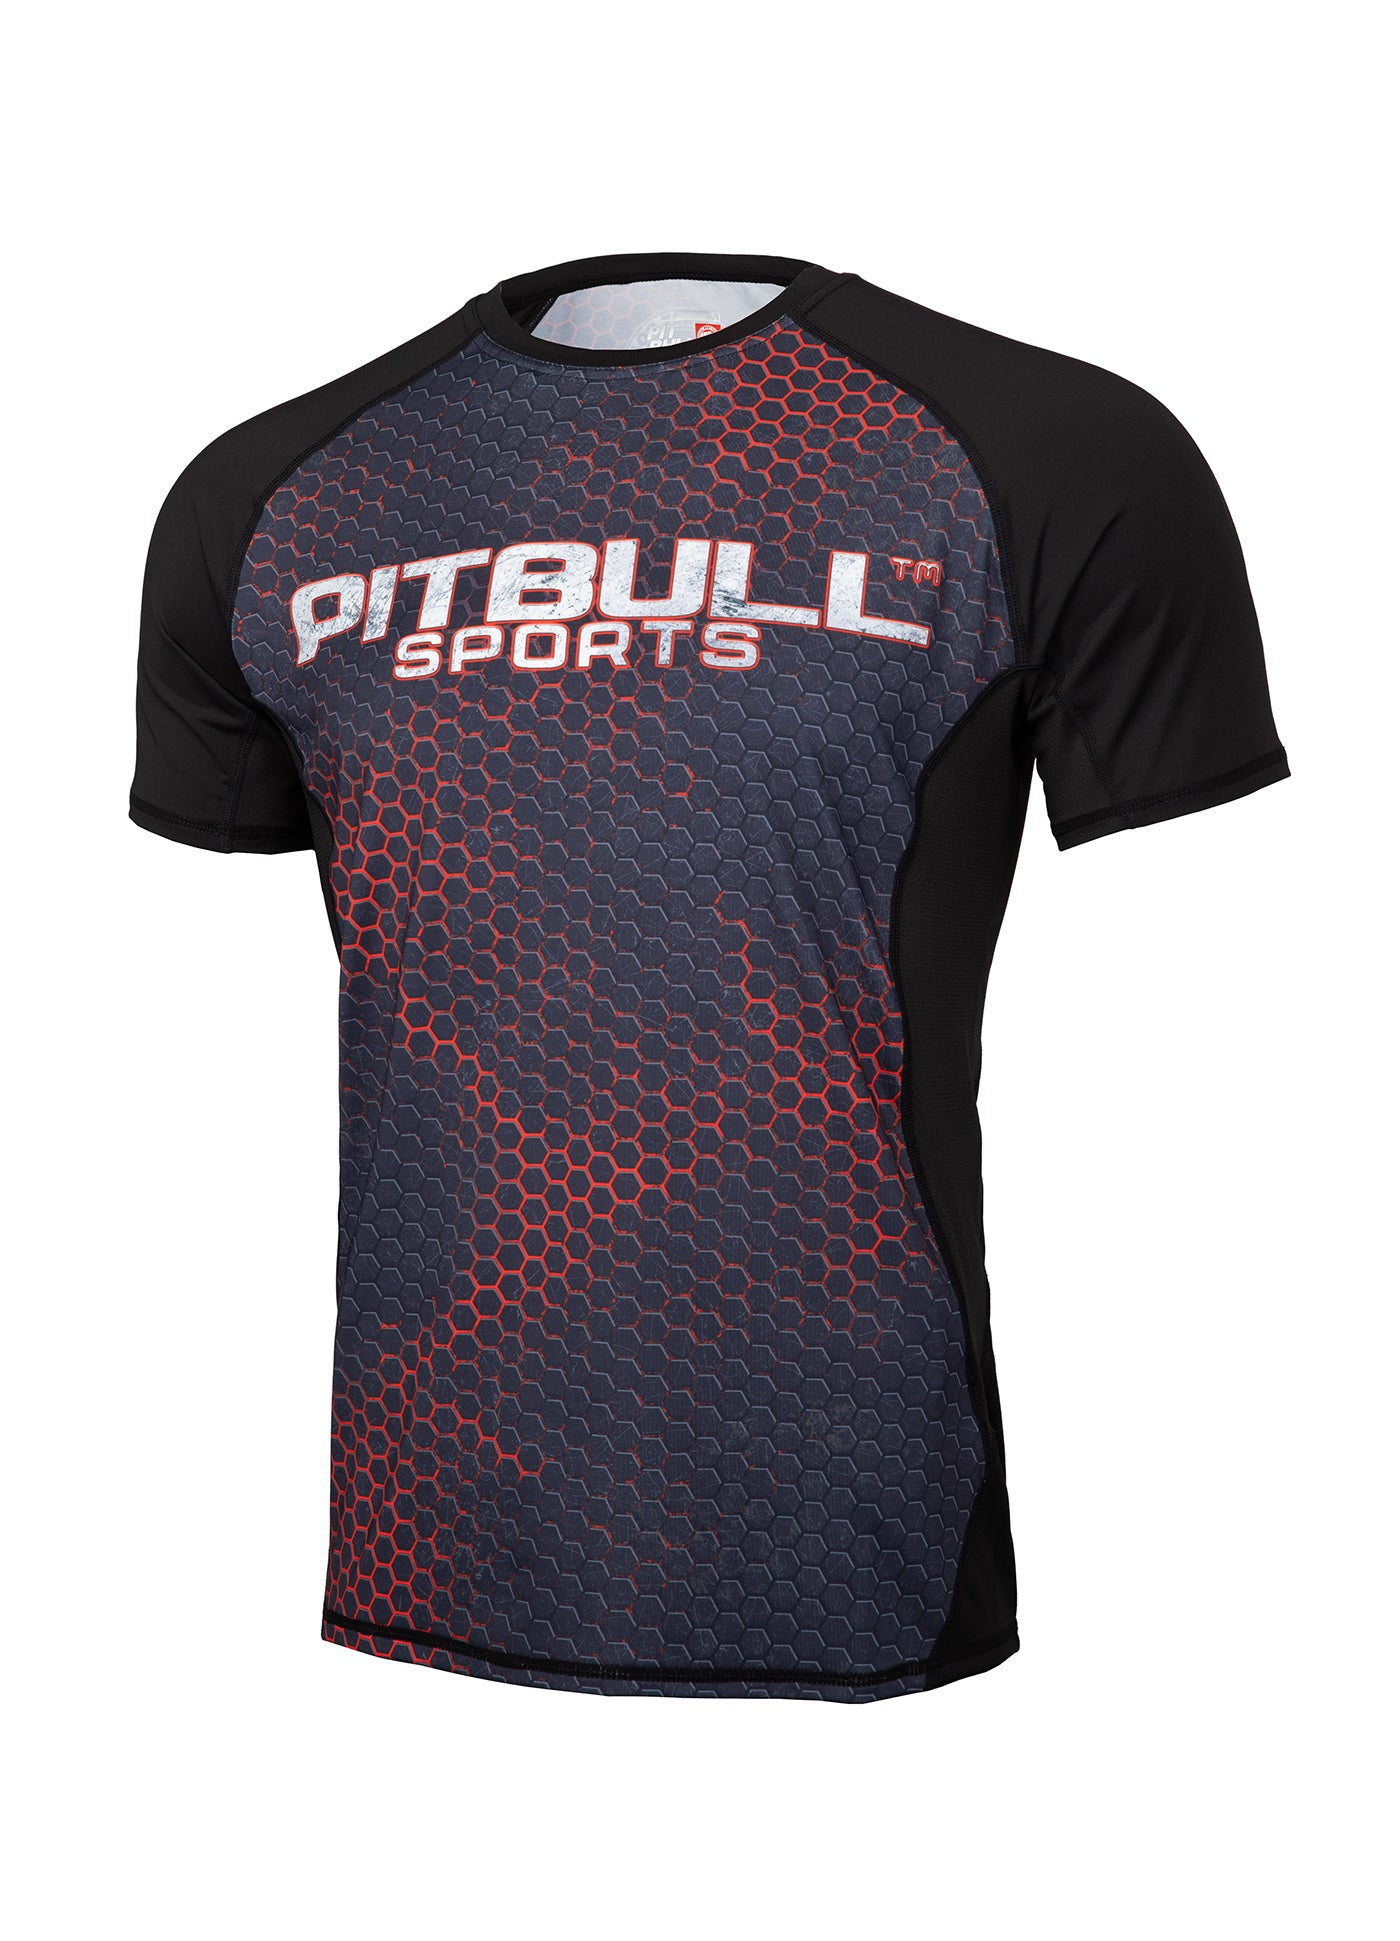 RASHGUARD PERFORMANCE MESH IRON LOGO - pitbullwestcoast